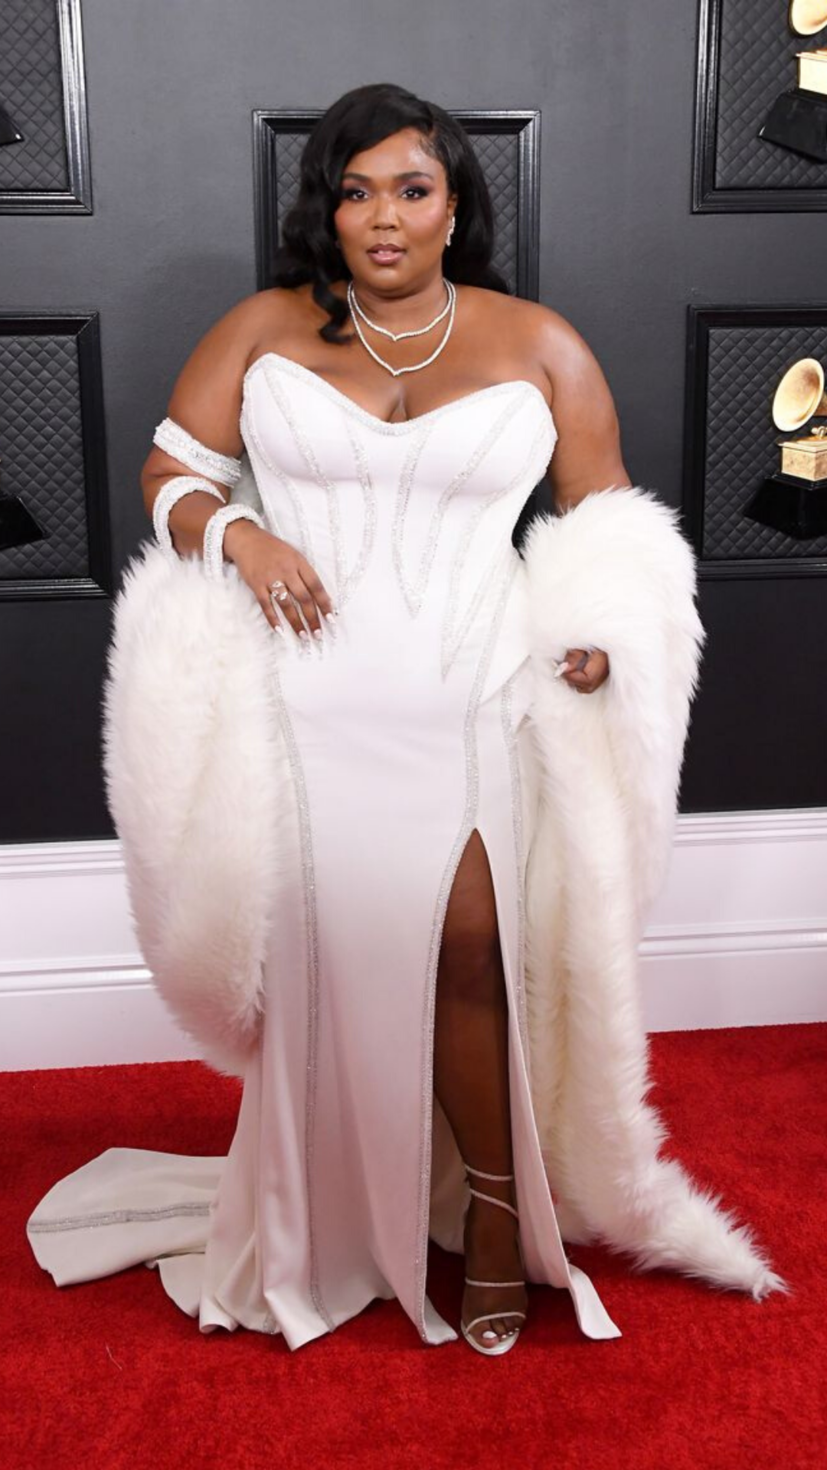 2020 Grammys, #academyawards, # celebrity fashion, #red carpet dresses, #Jewellery, #Celebrities, # celeb couples, Grammy Nominations, #celebs on red carpet, 2020 redrpet